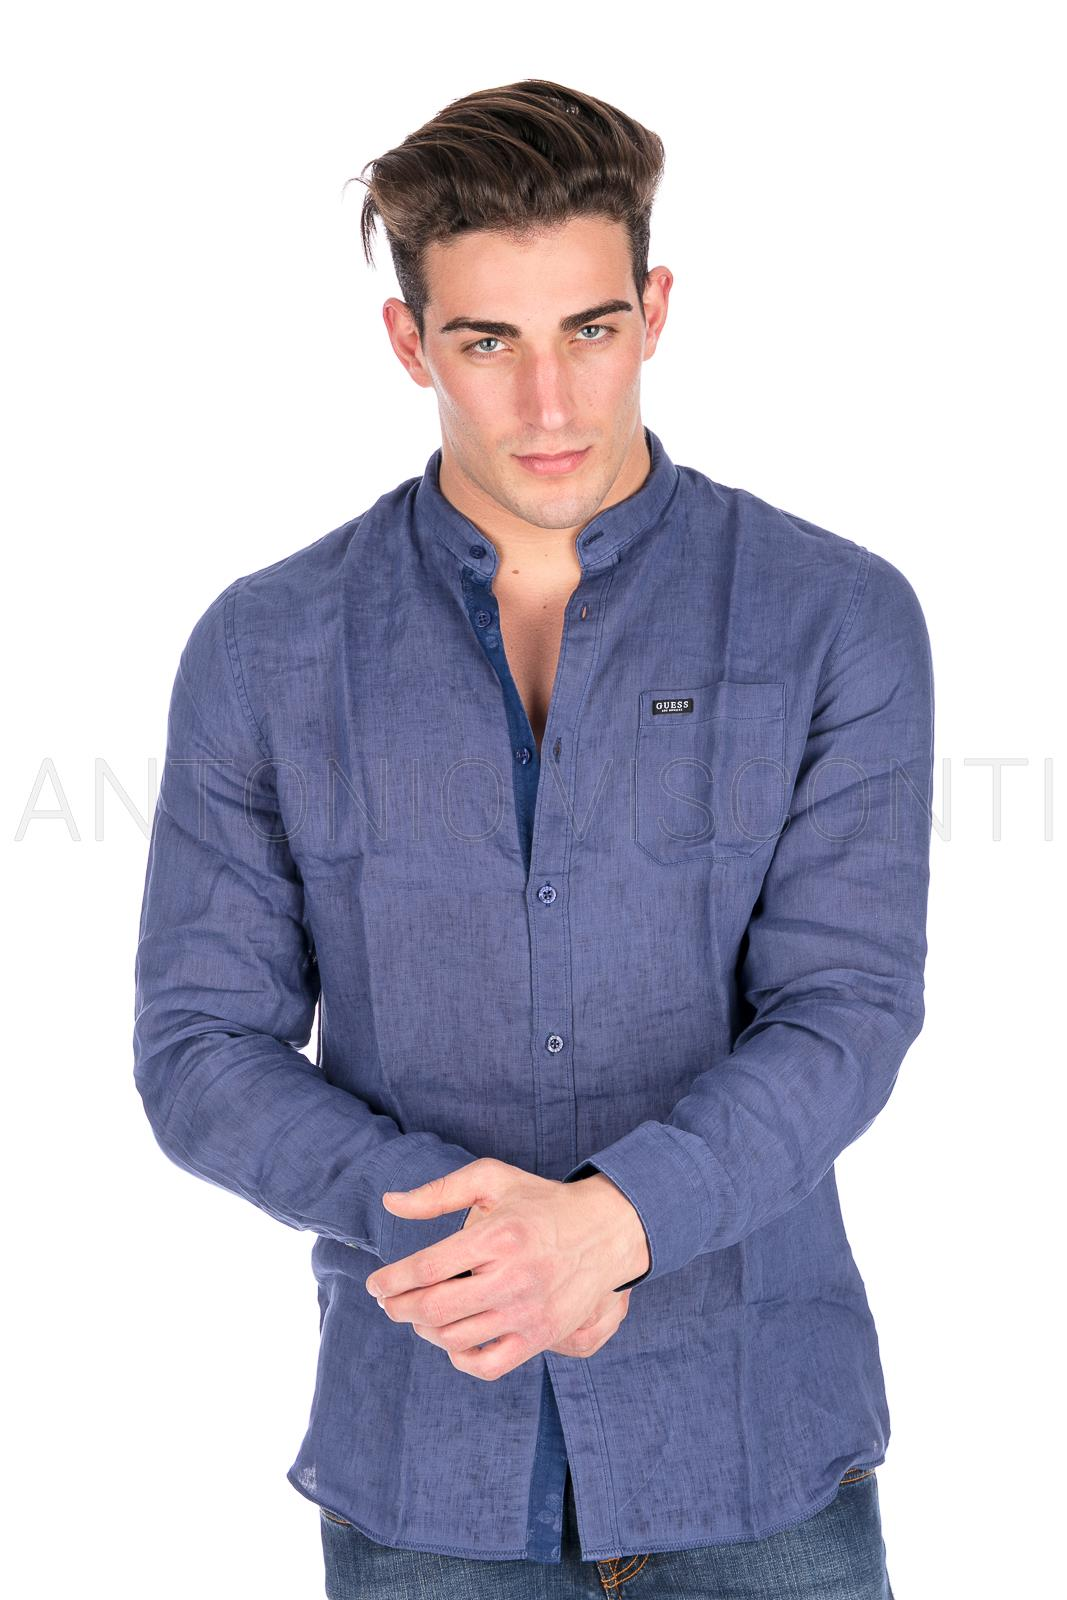 new styles f30d5 48599 Guess Jeans Uomo Camicia